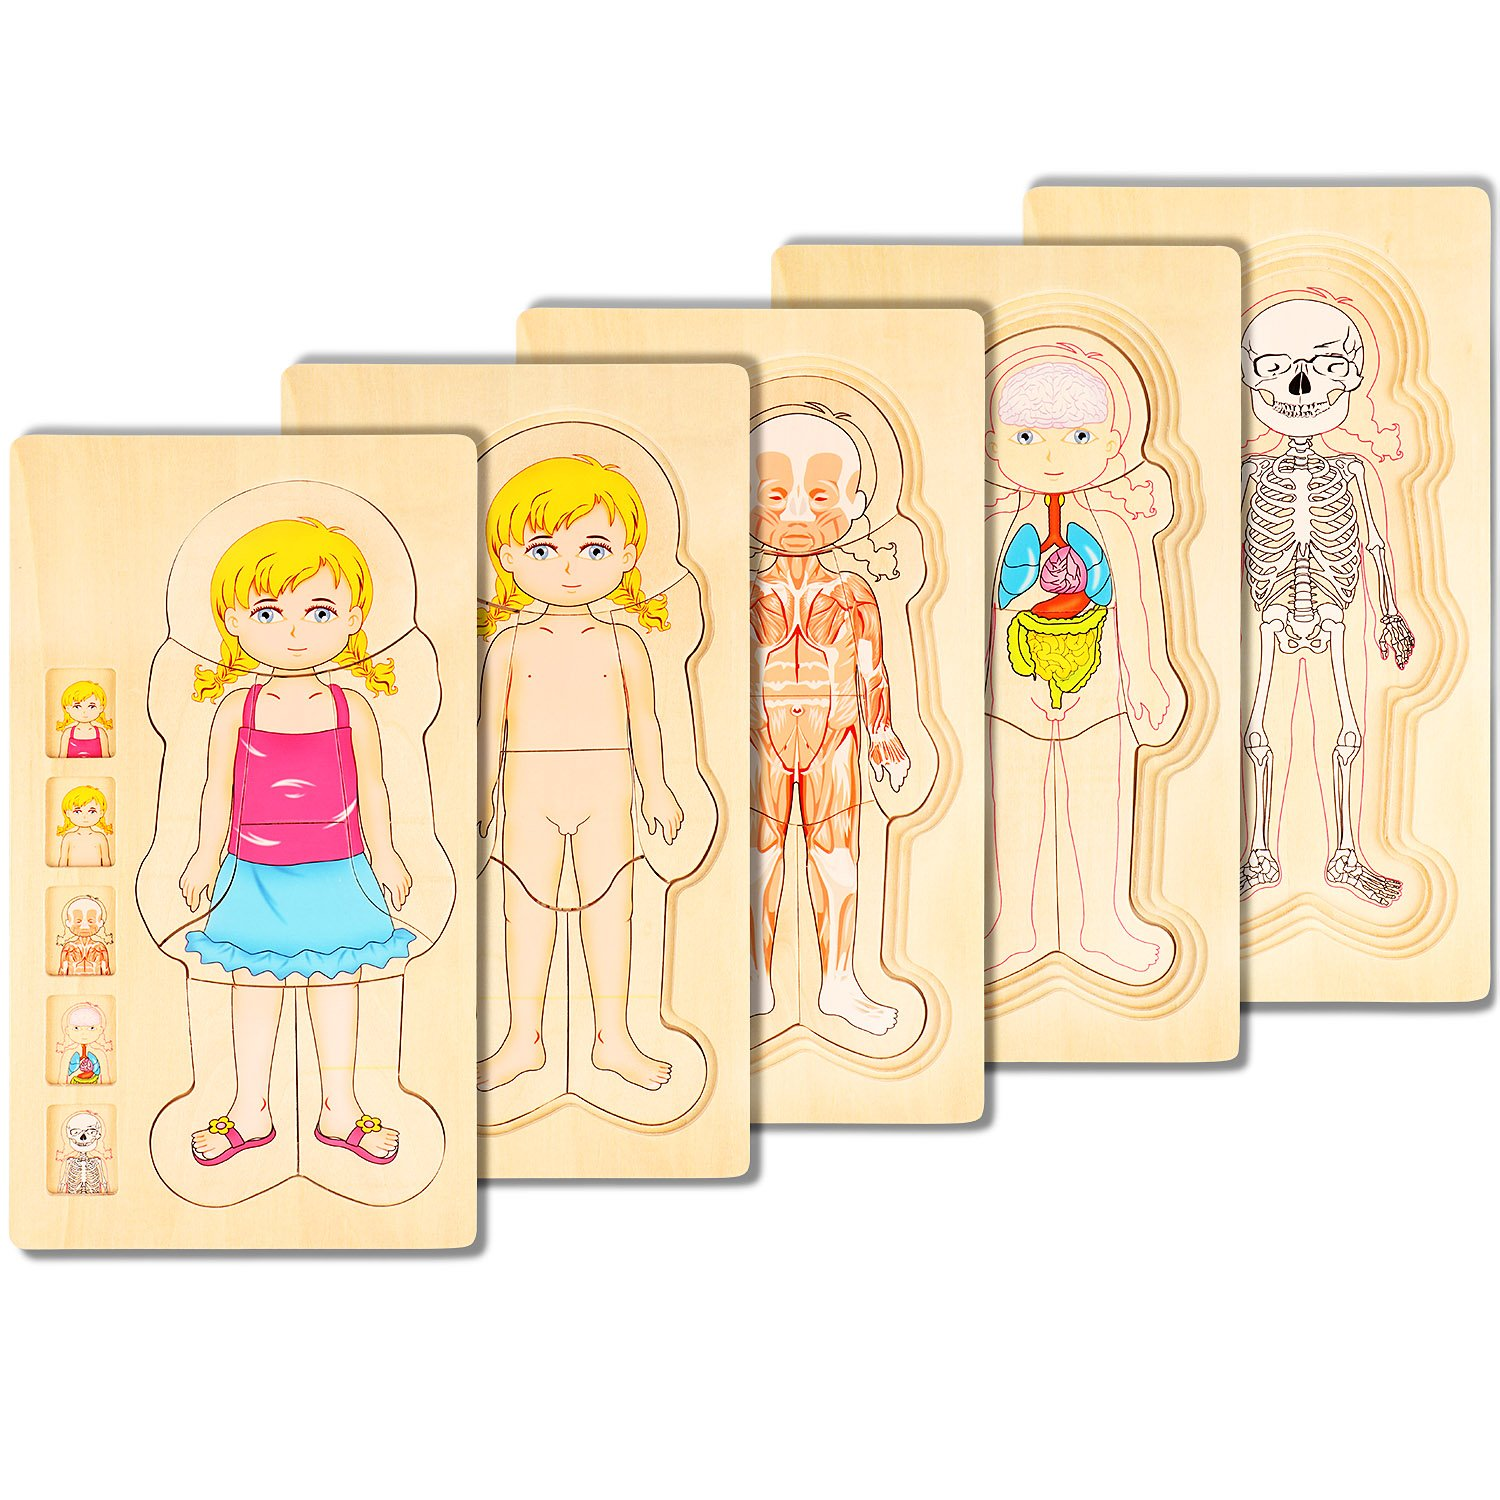 COGGIFEL Human Body Puzzle Toys 5-layer Wooden Puzzle Body Structure Children Early Education Intelligence Training Plaything